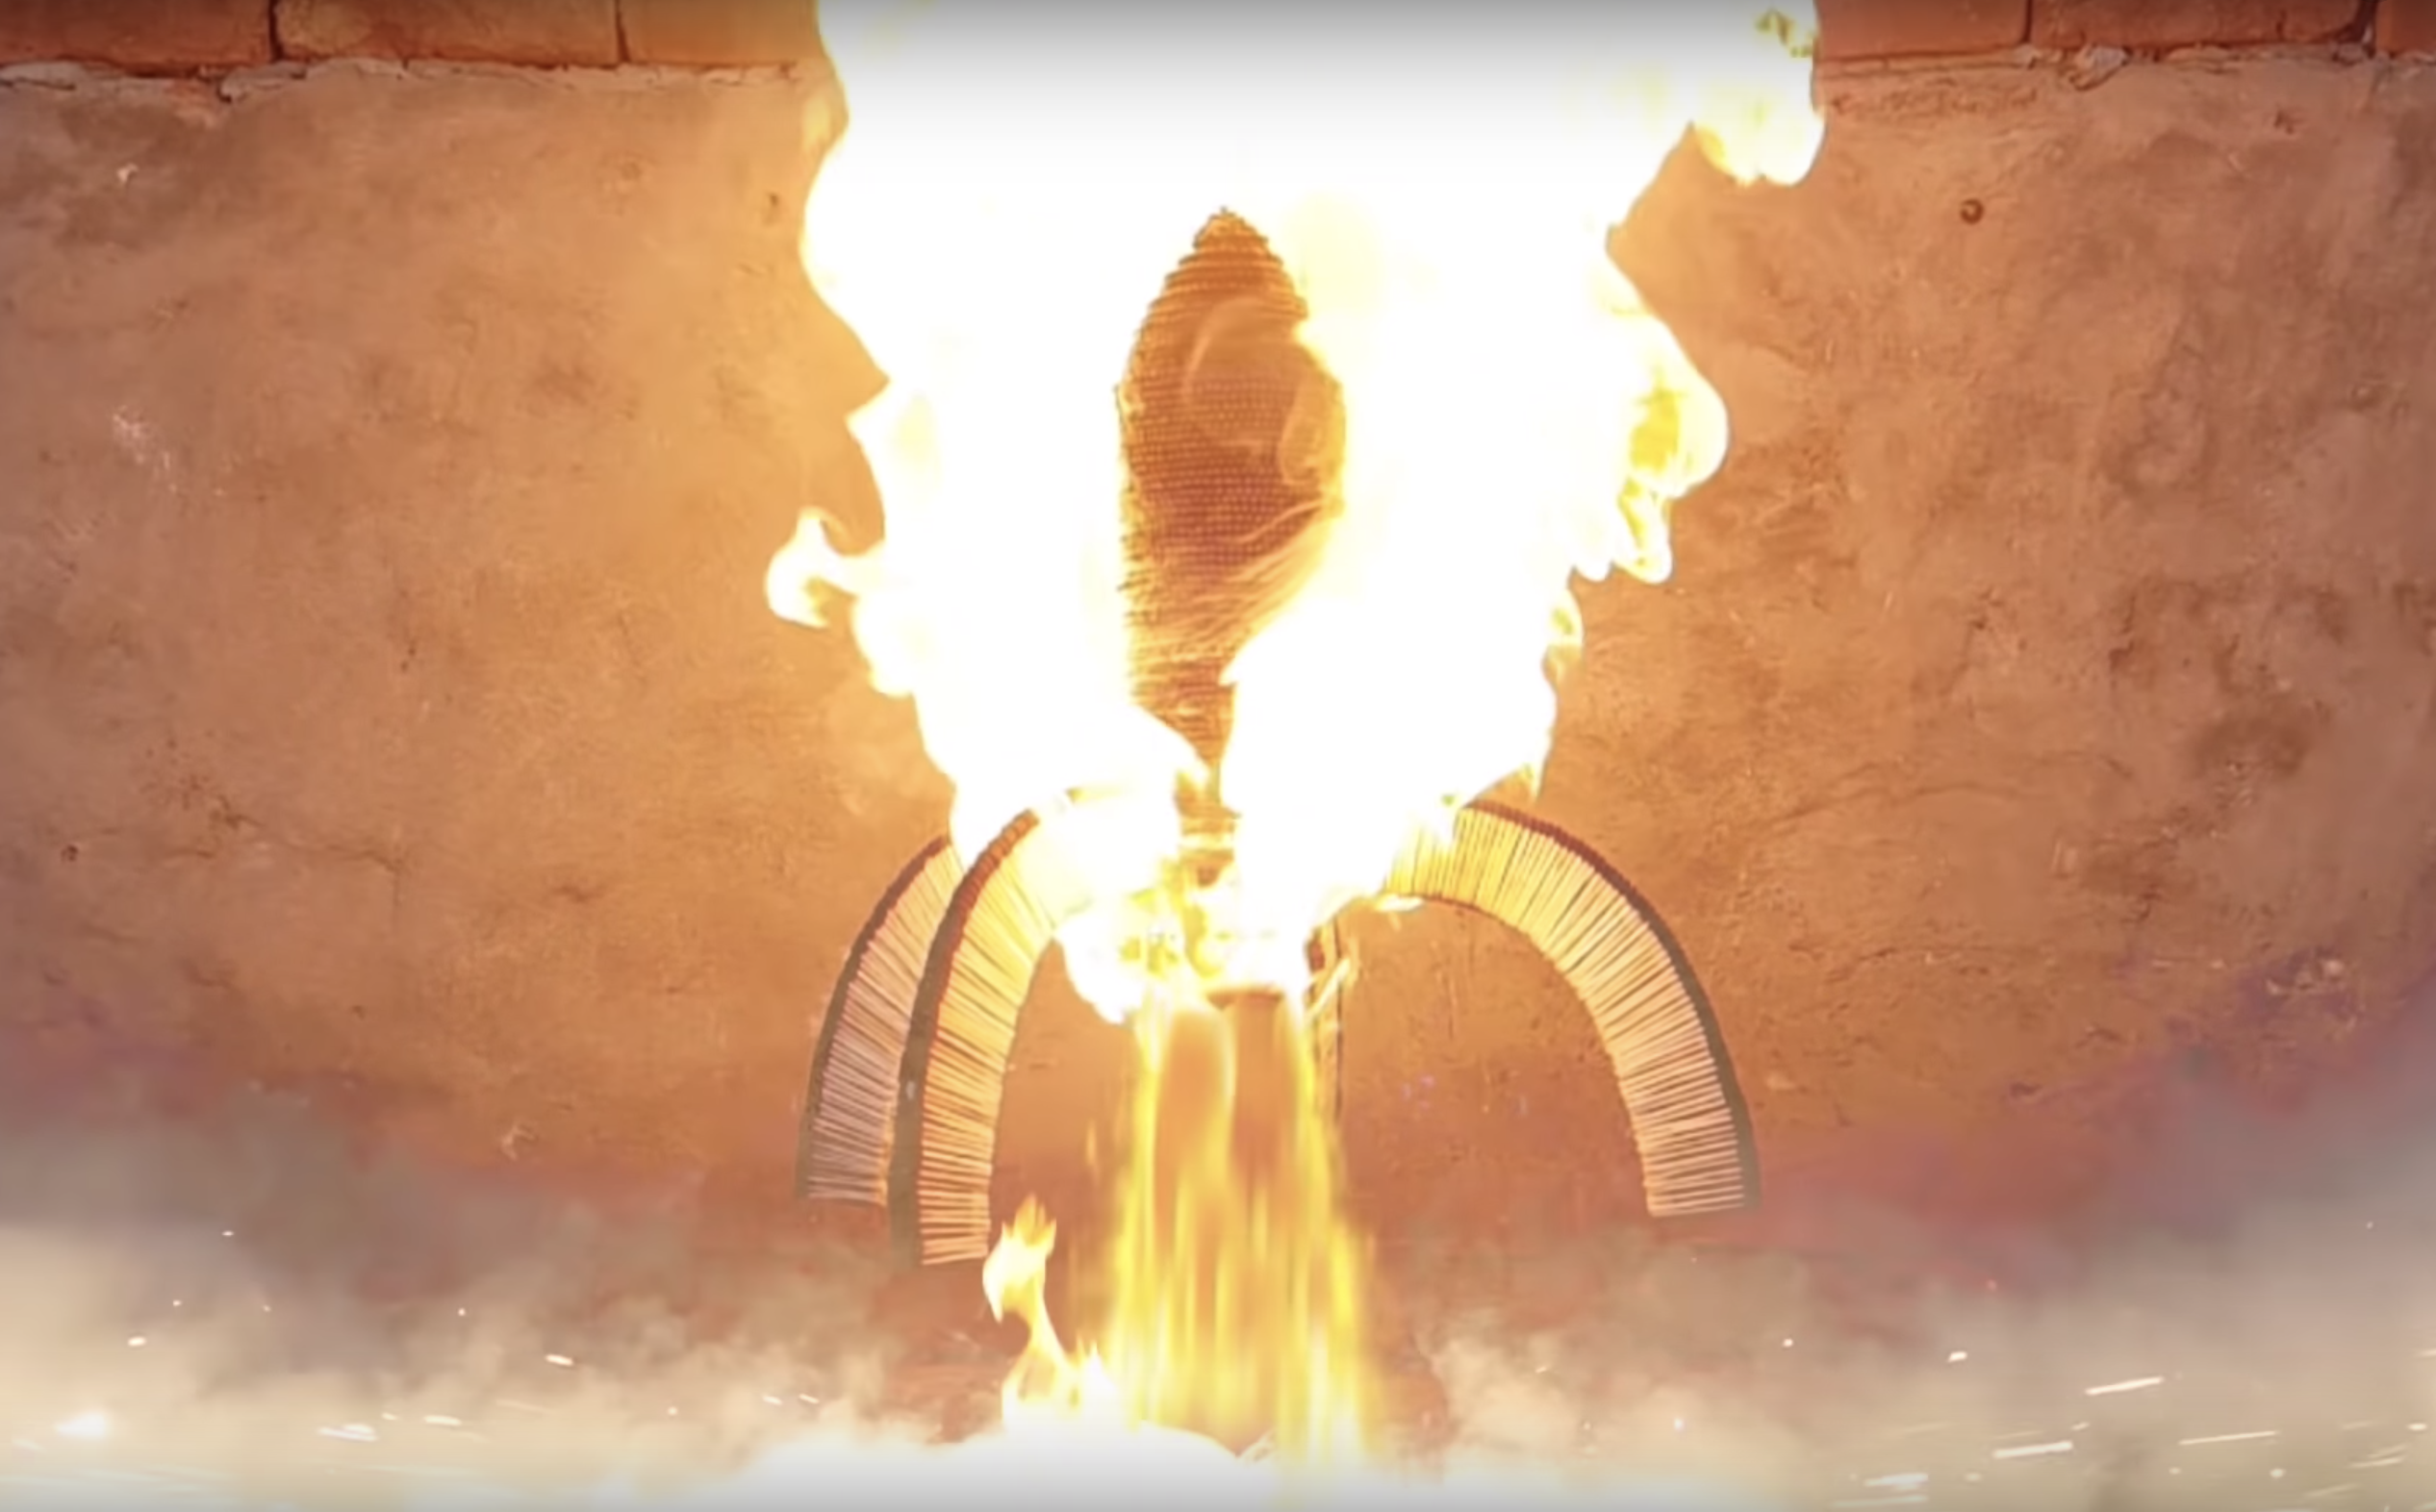 Watch This Guy Build a Rocket with 1 Million Matches—and Actually Launch It